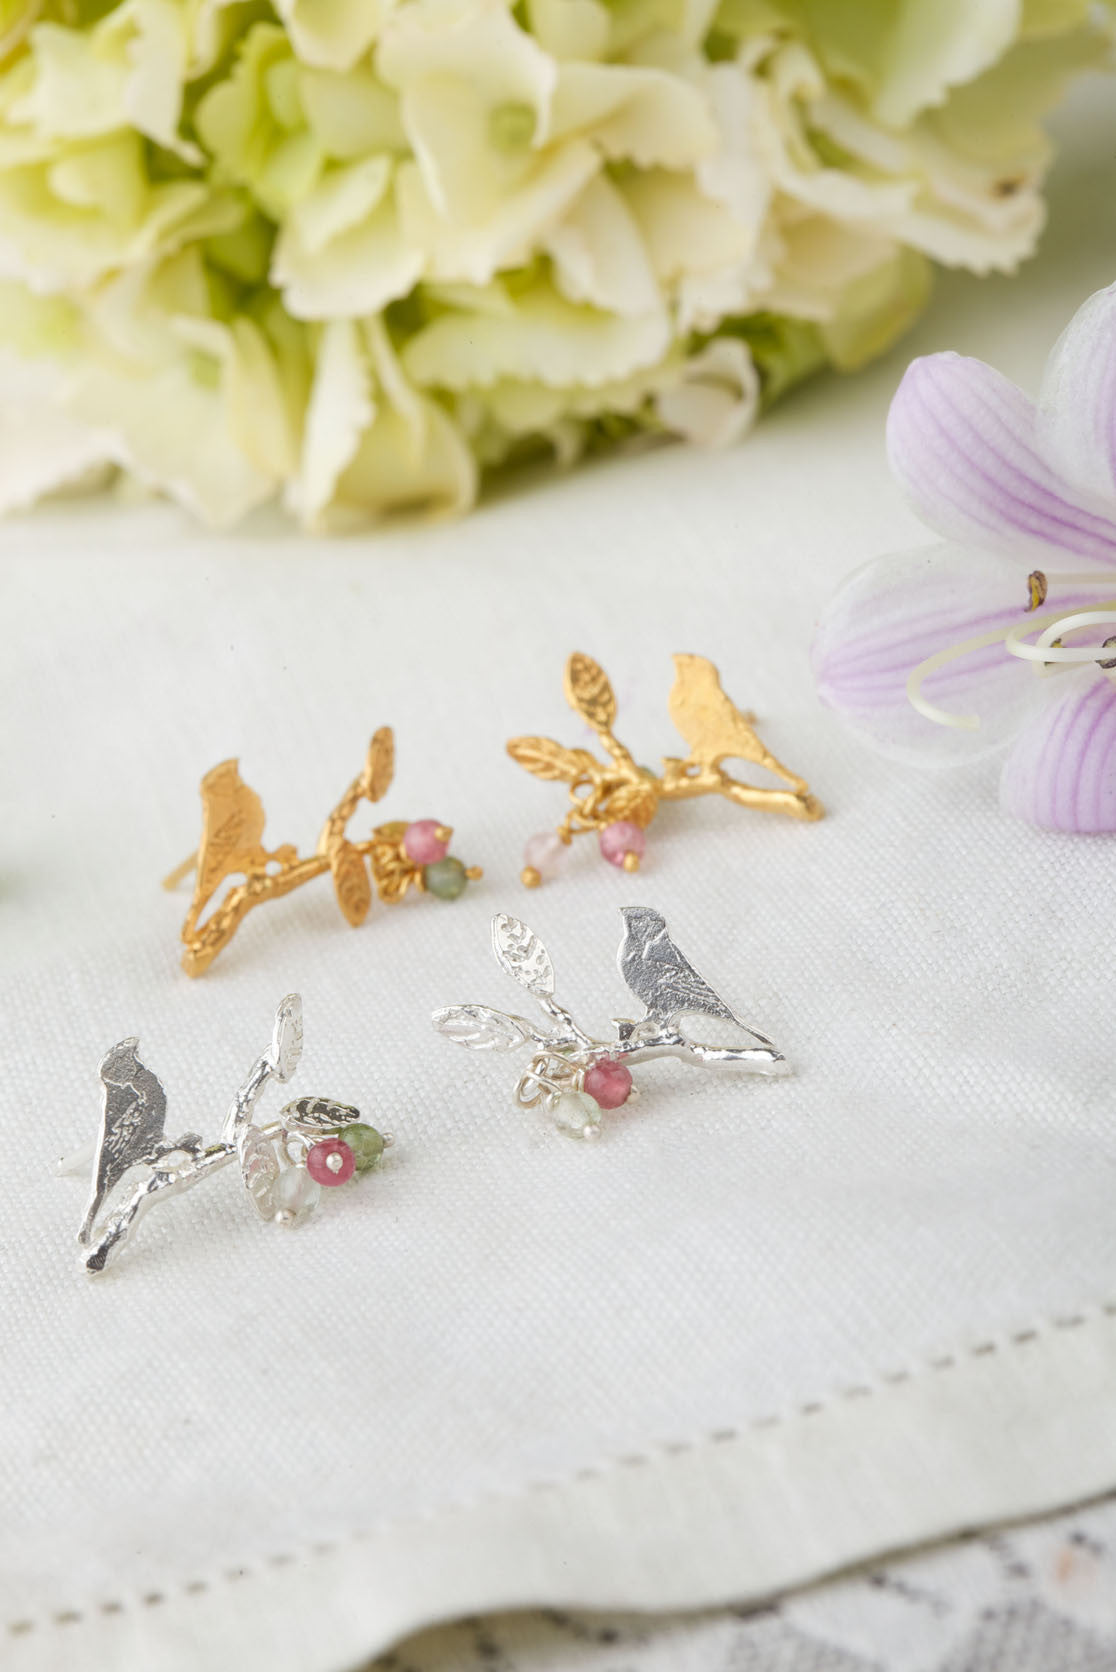 Bird On Branch With Leaves Earrings